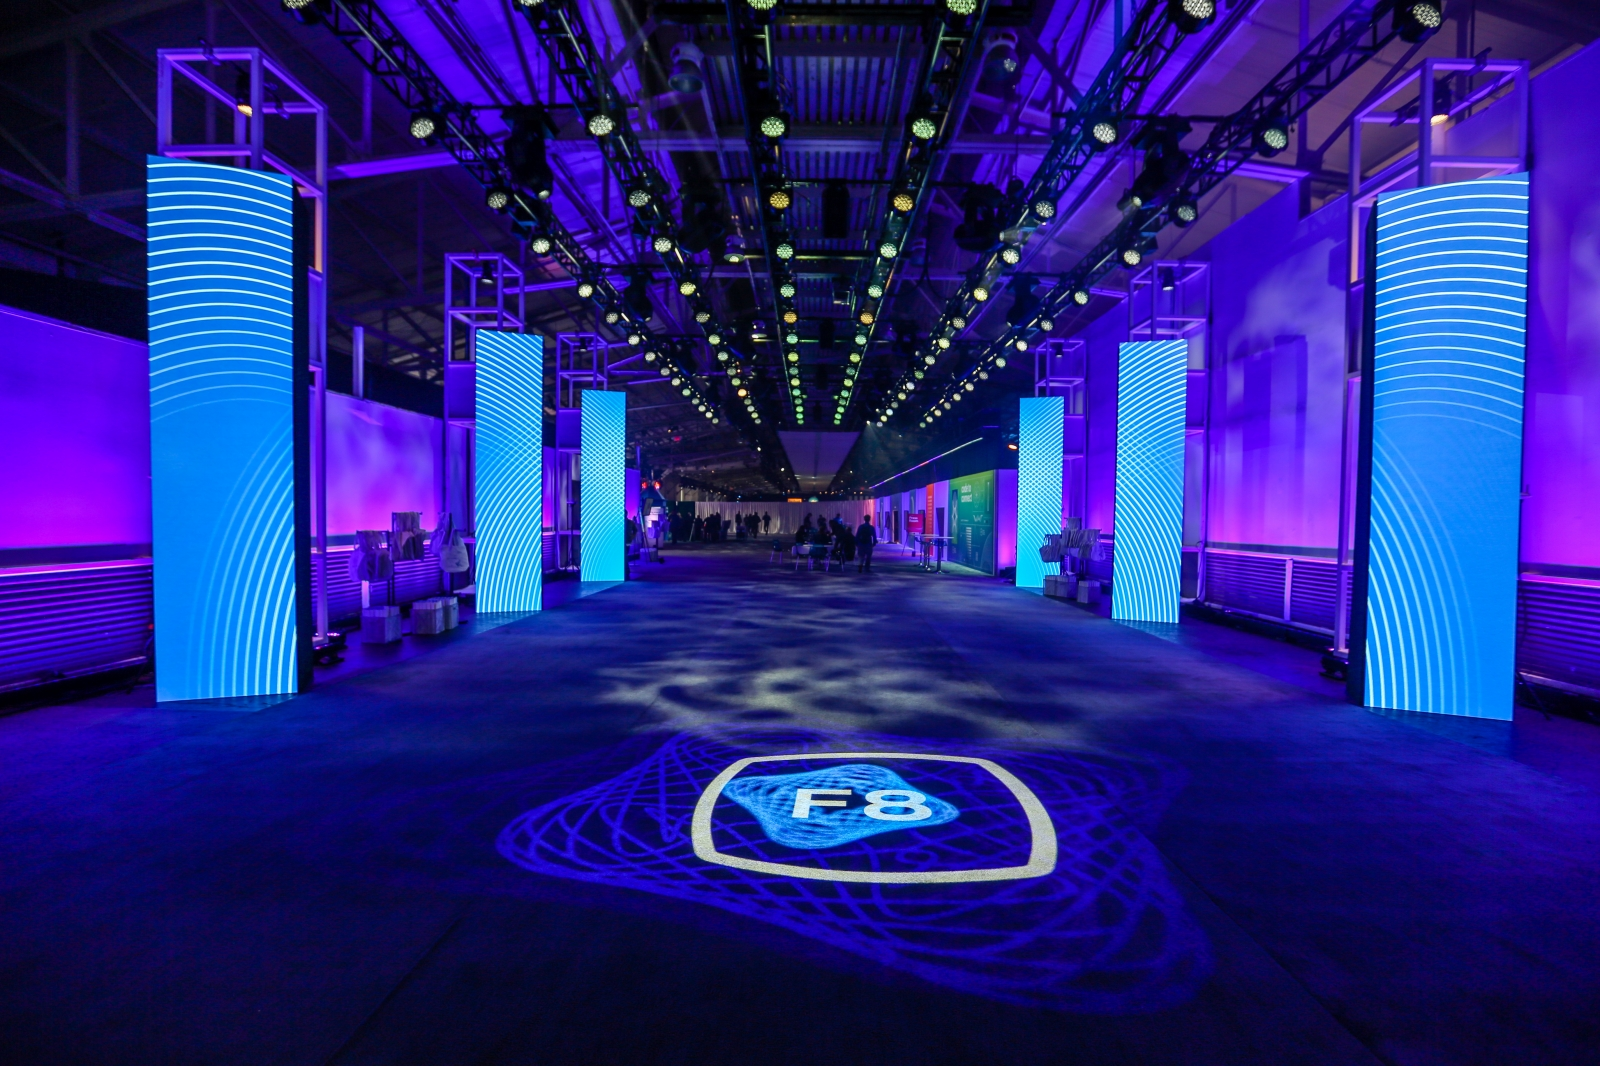 Seeing eye lighting design chooses 4wall las vegas for facebook the lds main objective with his lighting fixtures was to create a singular cohesive look and feel in all the occupied areas of the venue aloadofball Gallery